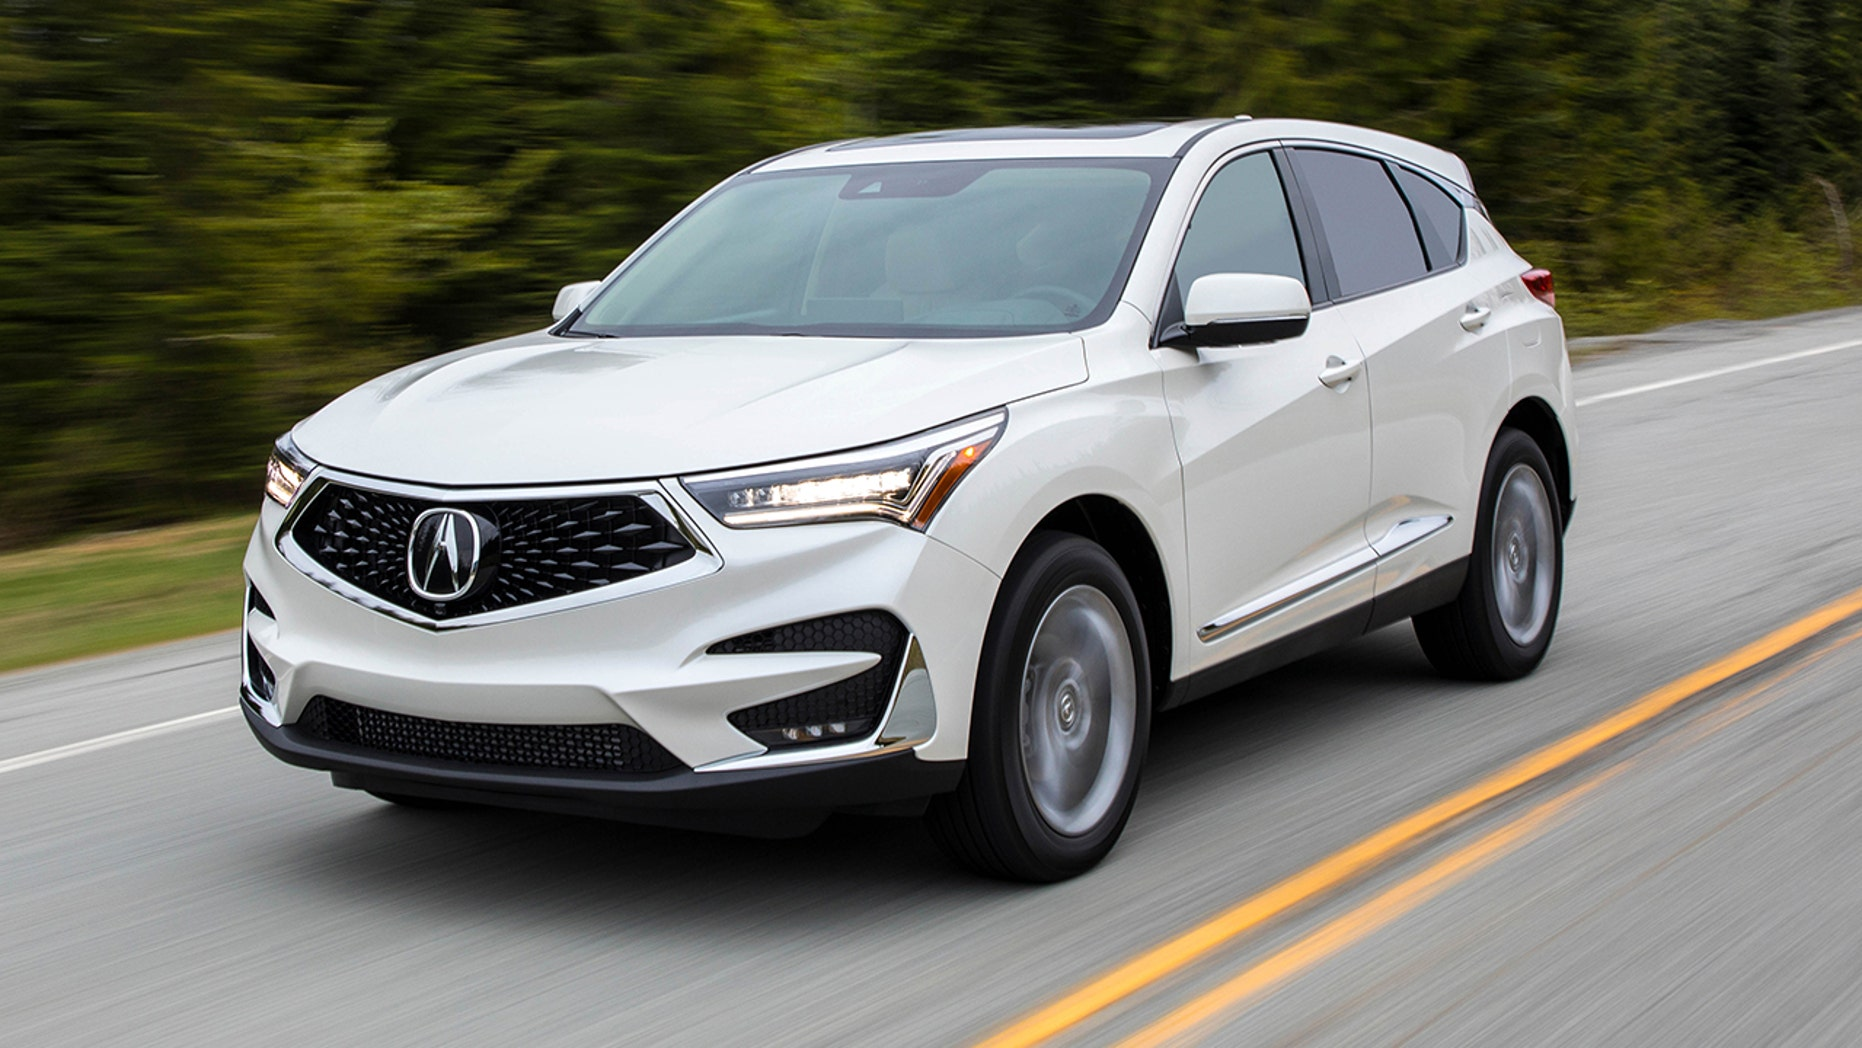 2019 Acura Rdx Test Drive Back To The Future